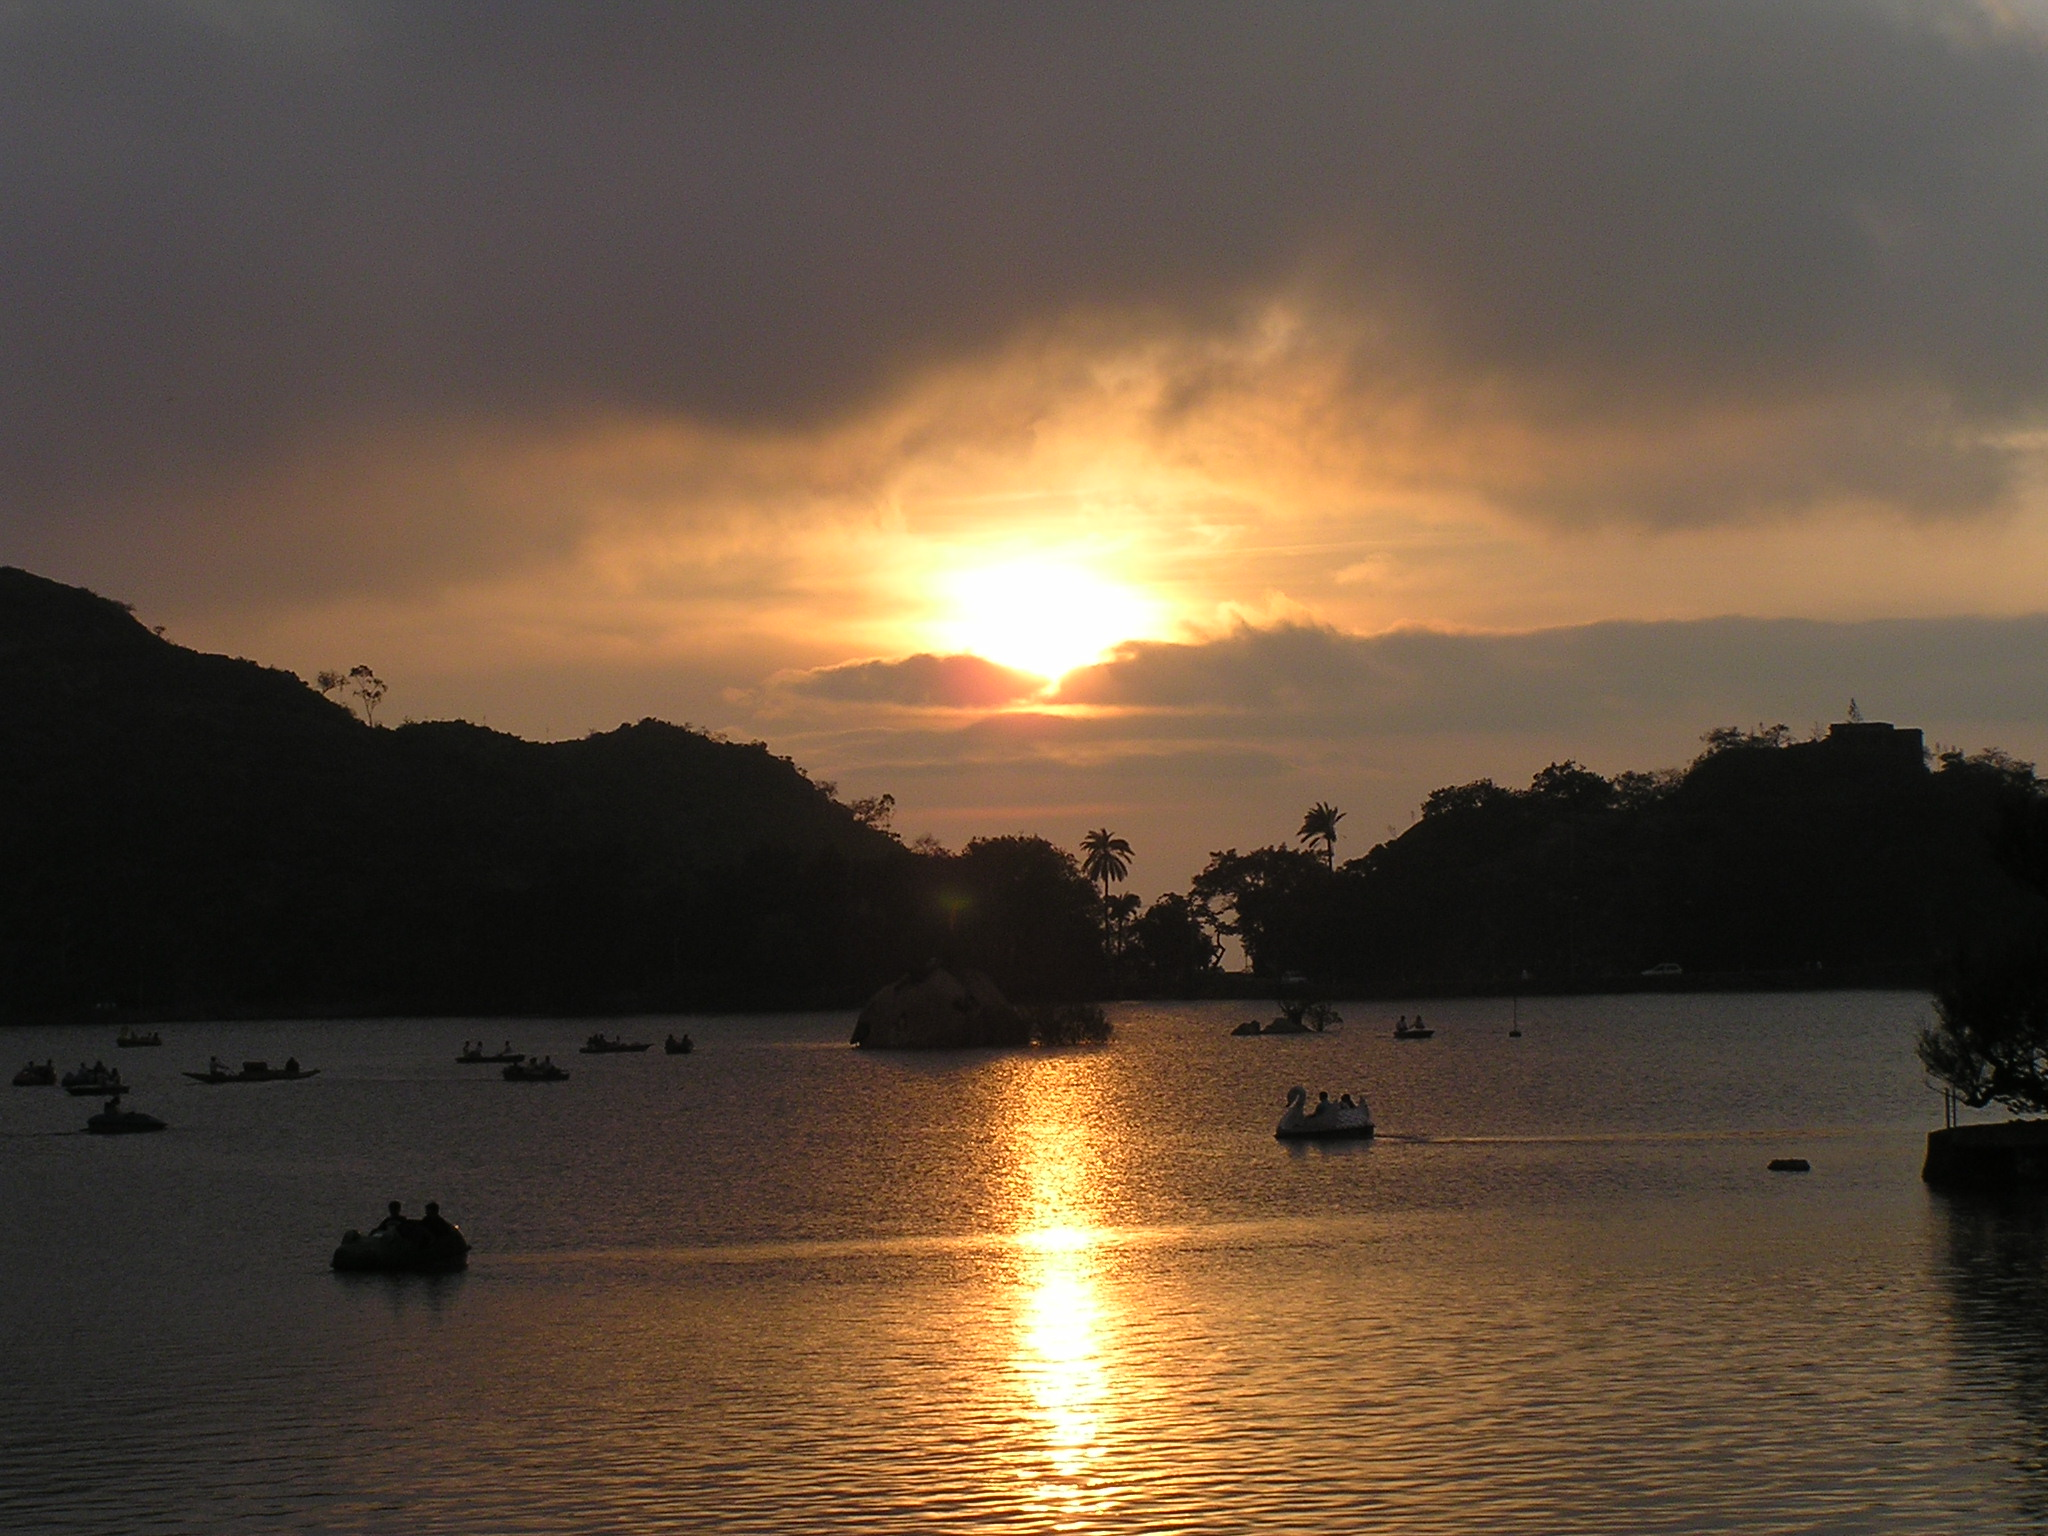 sunset at Mount Abu